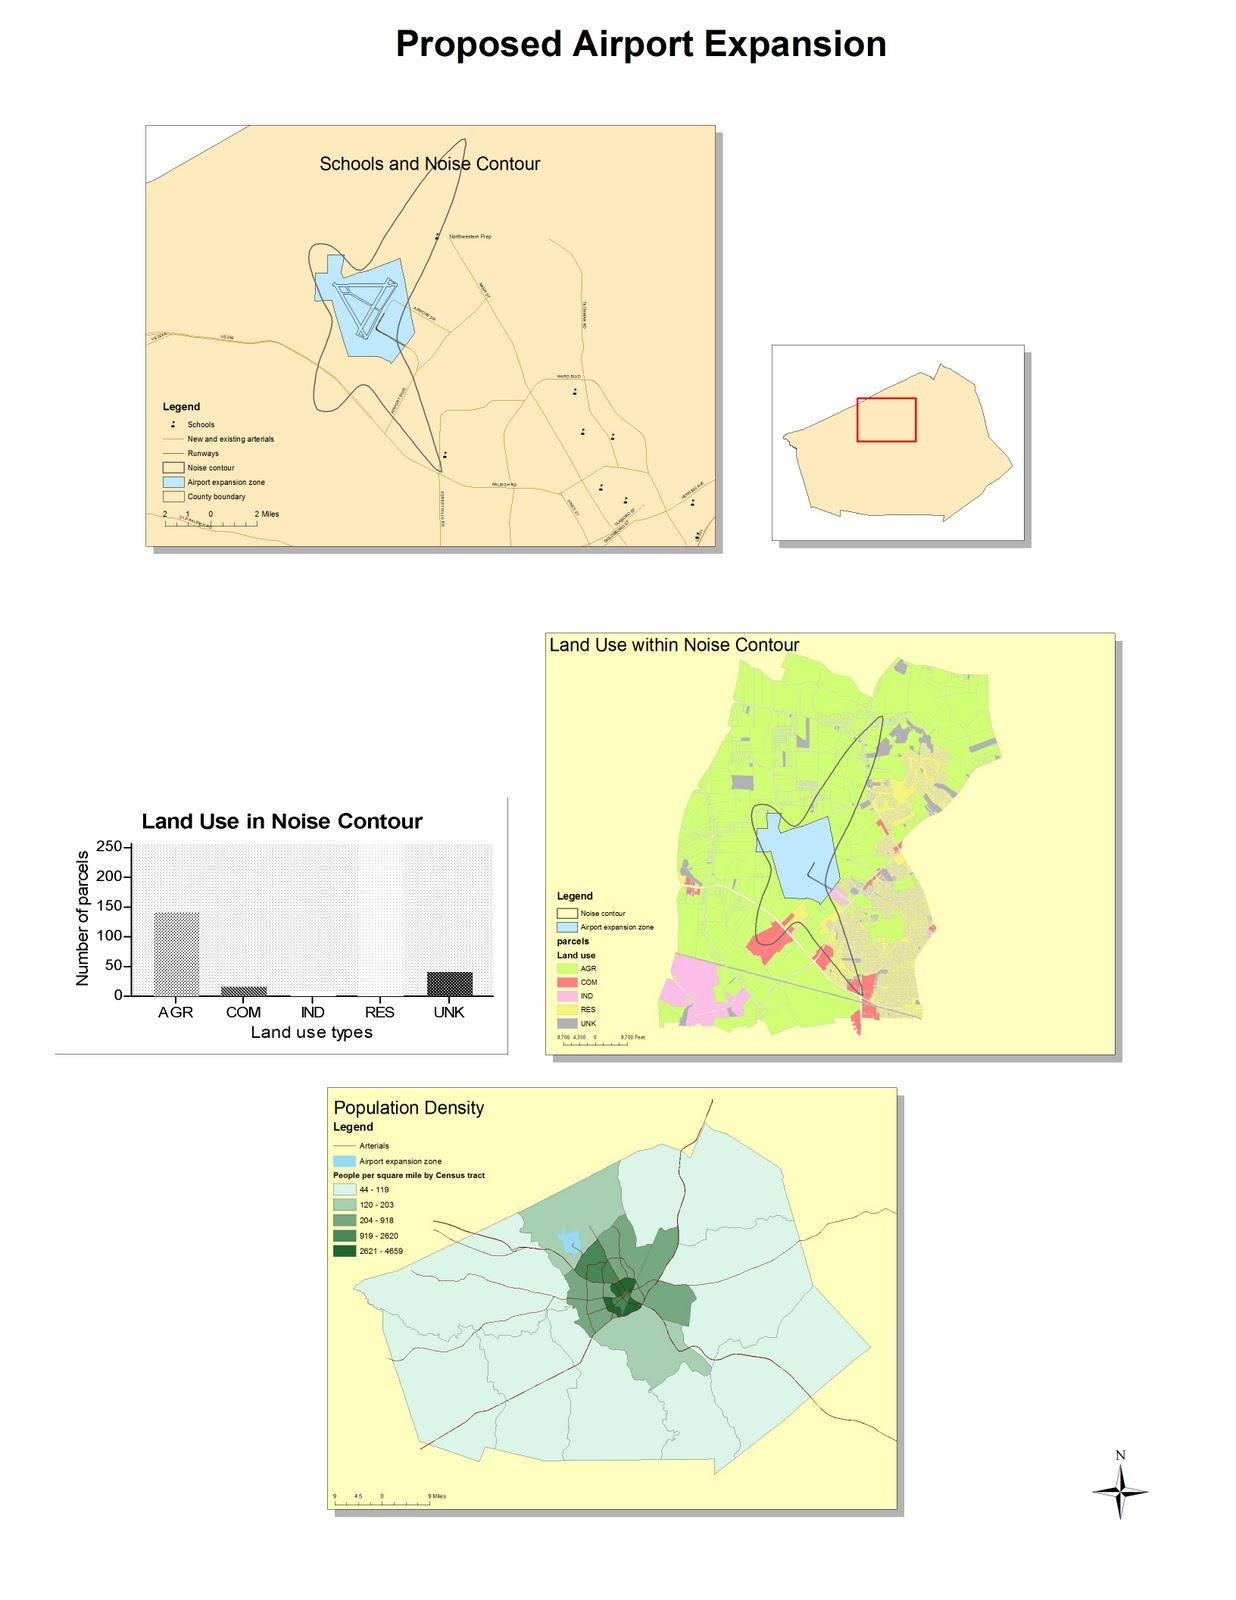 i plan to continue exploring and using arcmap consistently to become a truly equipped knowledgeable mapmaker and critical reader the following is the map